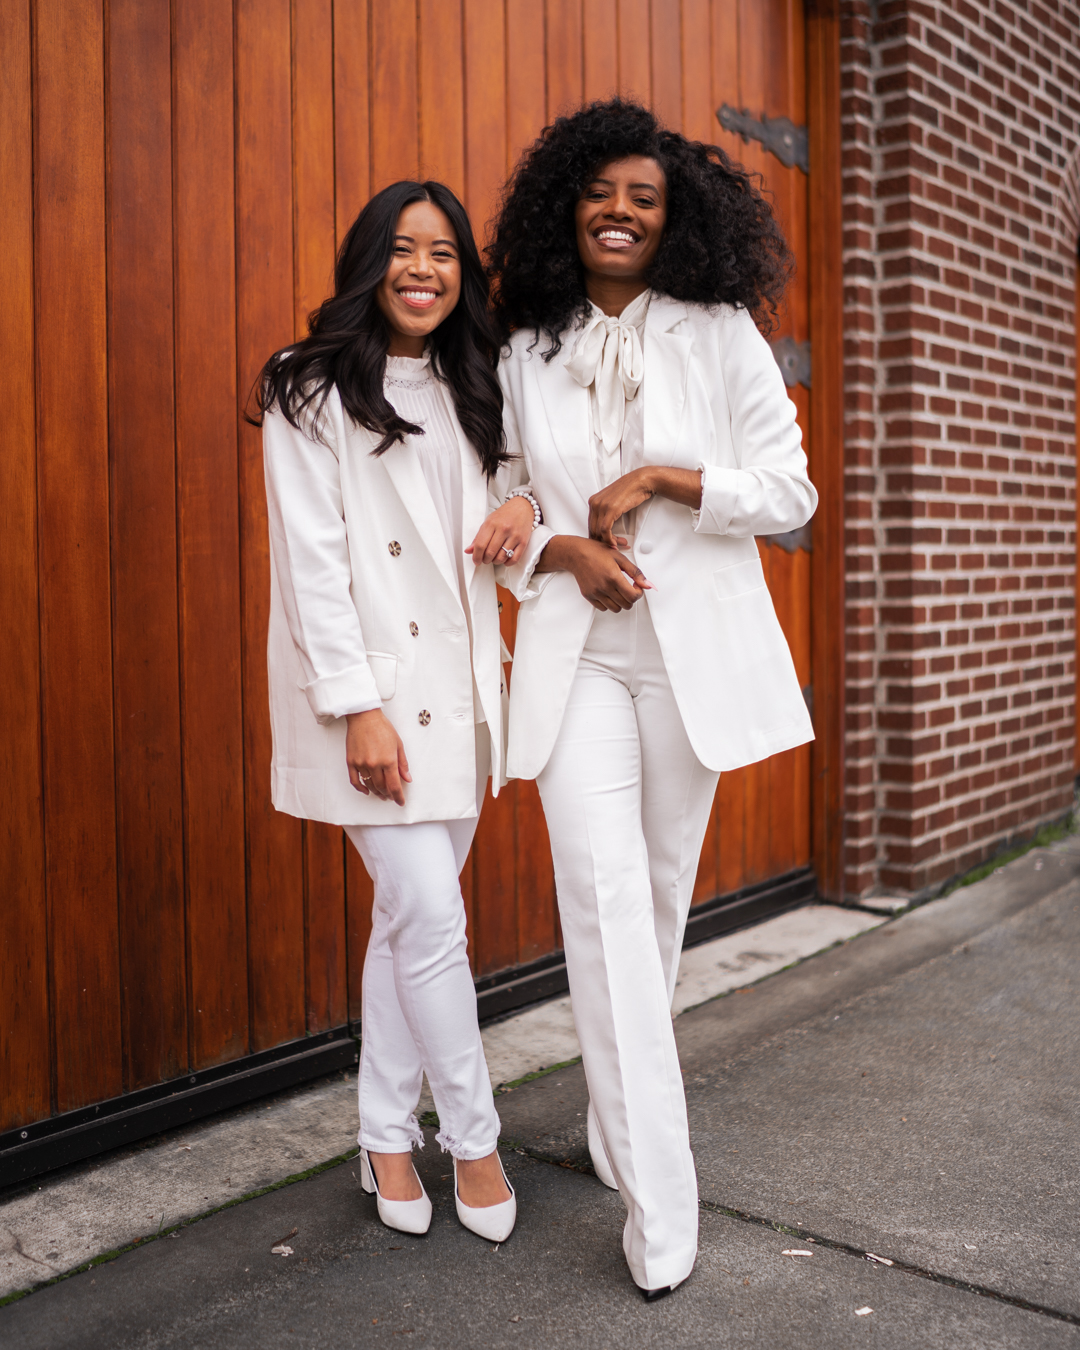 best friend photo shoot ideas - white suit photo shoot - women of color - content creators of color - Inauguration Day 2021 - Kamala Harris inspired outfit - Women in White Suits - image from www.emmasedition.com - copyright @emmasedition